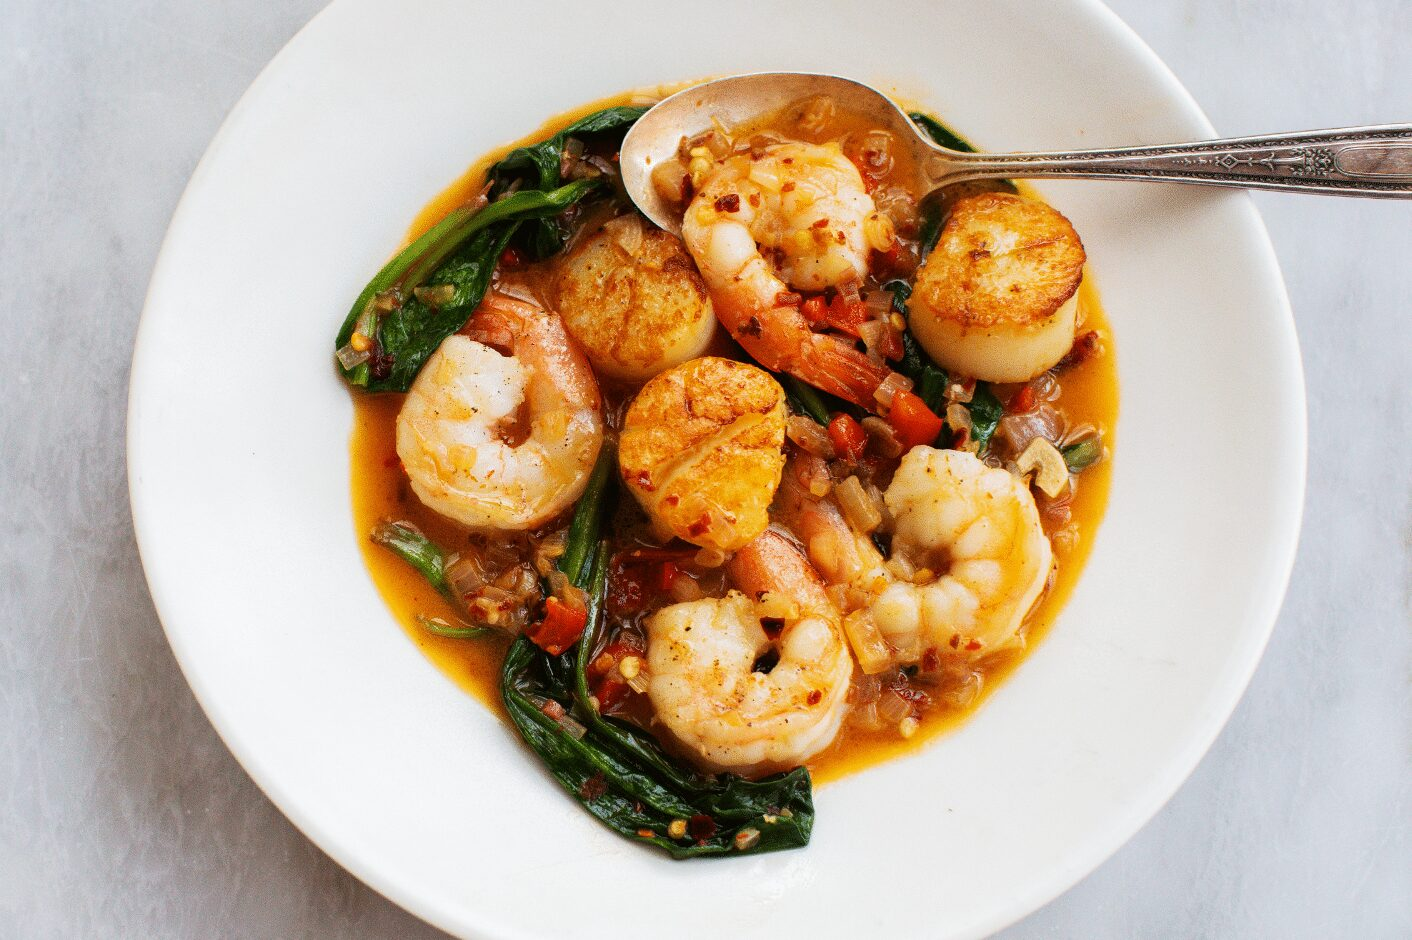 Shrimp and Scallop with Ramps